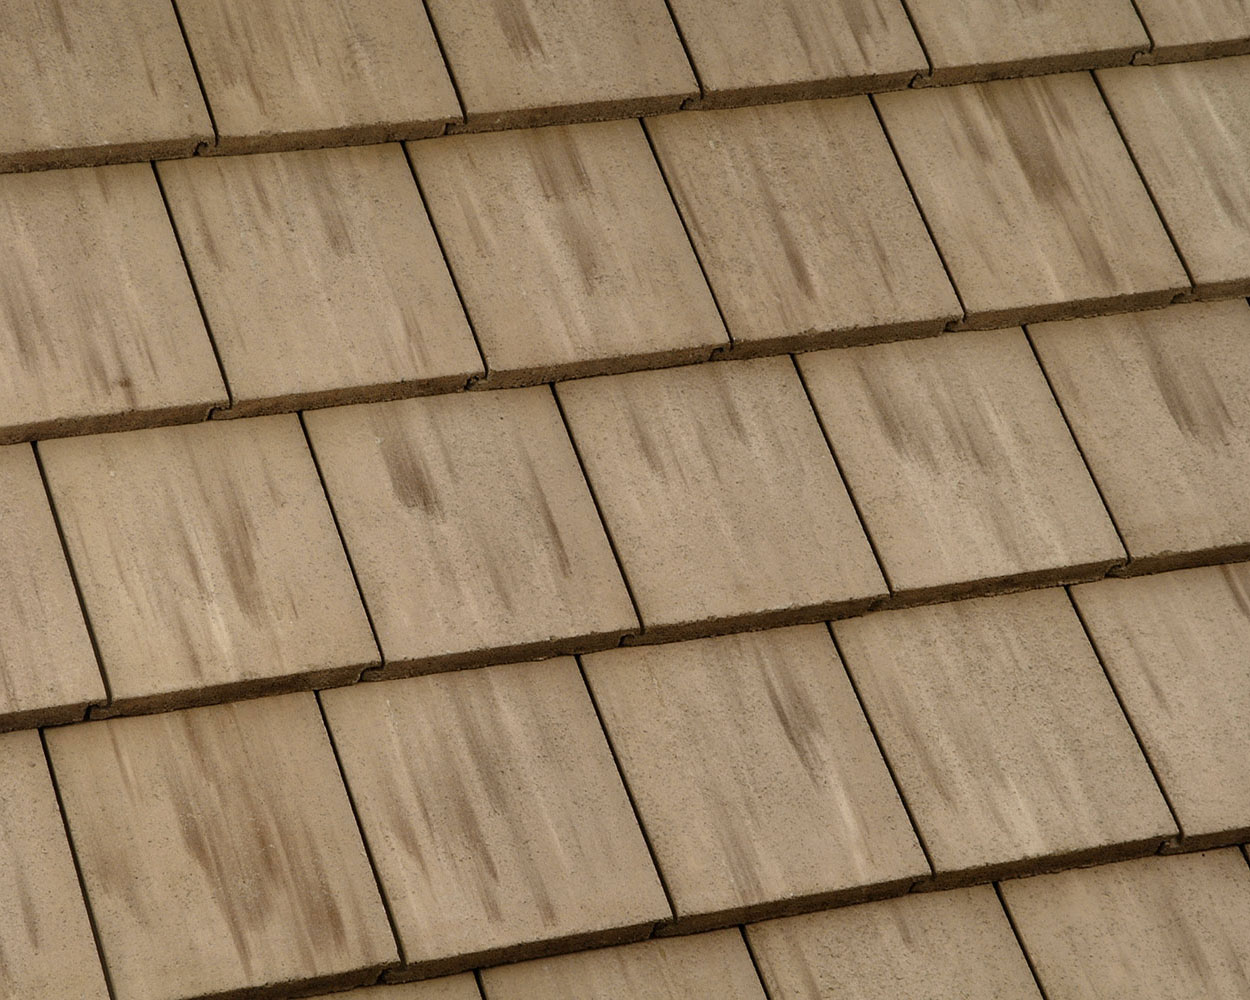 Santa paula tile roof color swatch